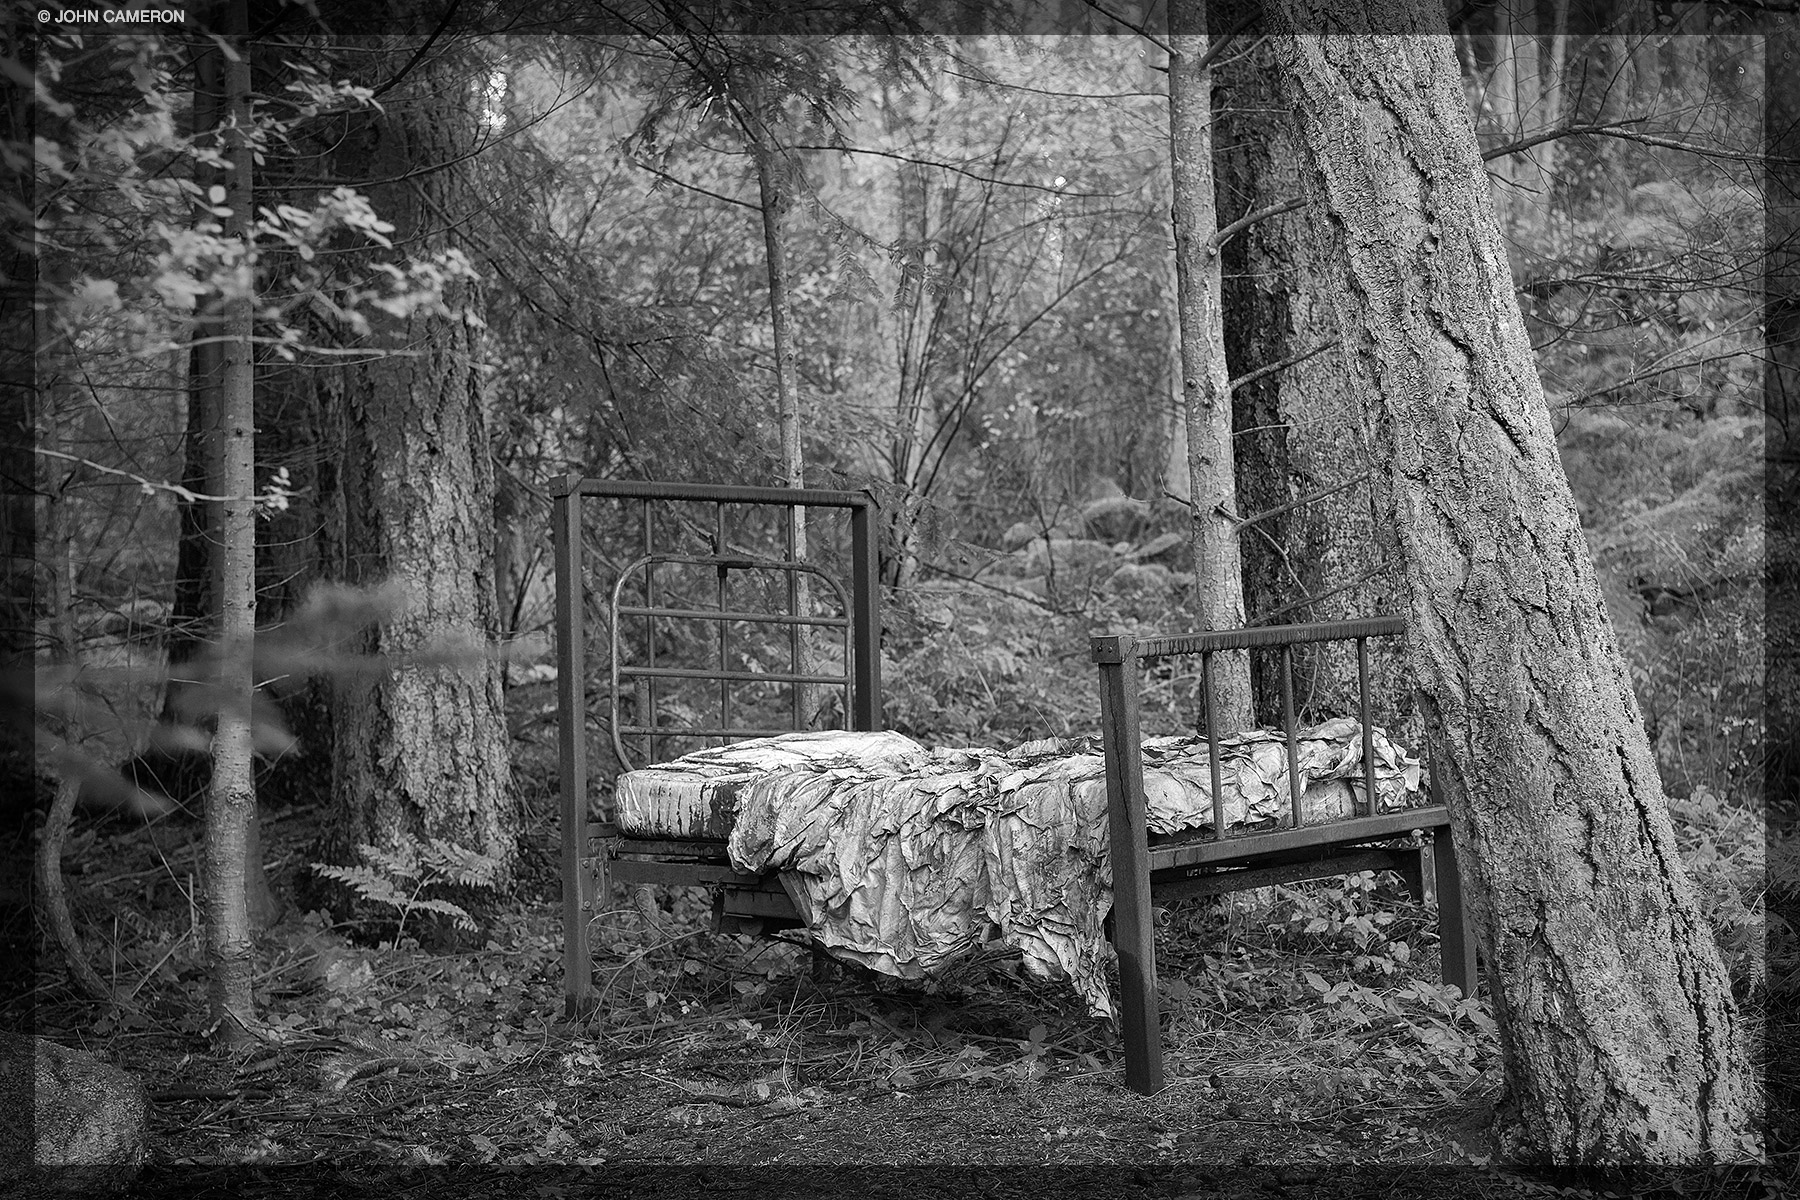 Bed in the Woods